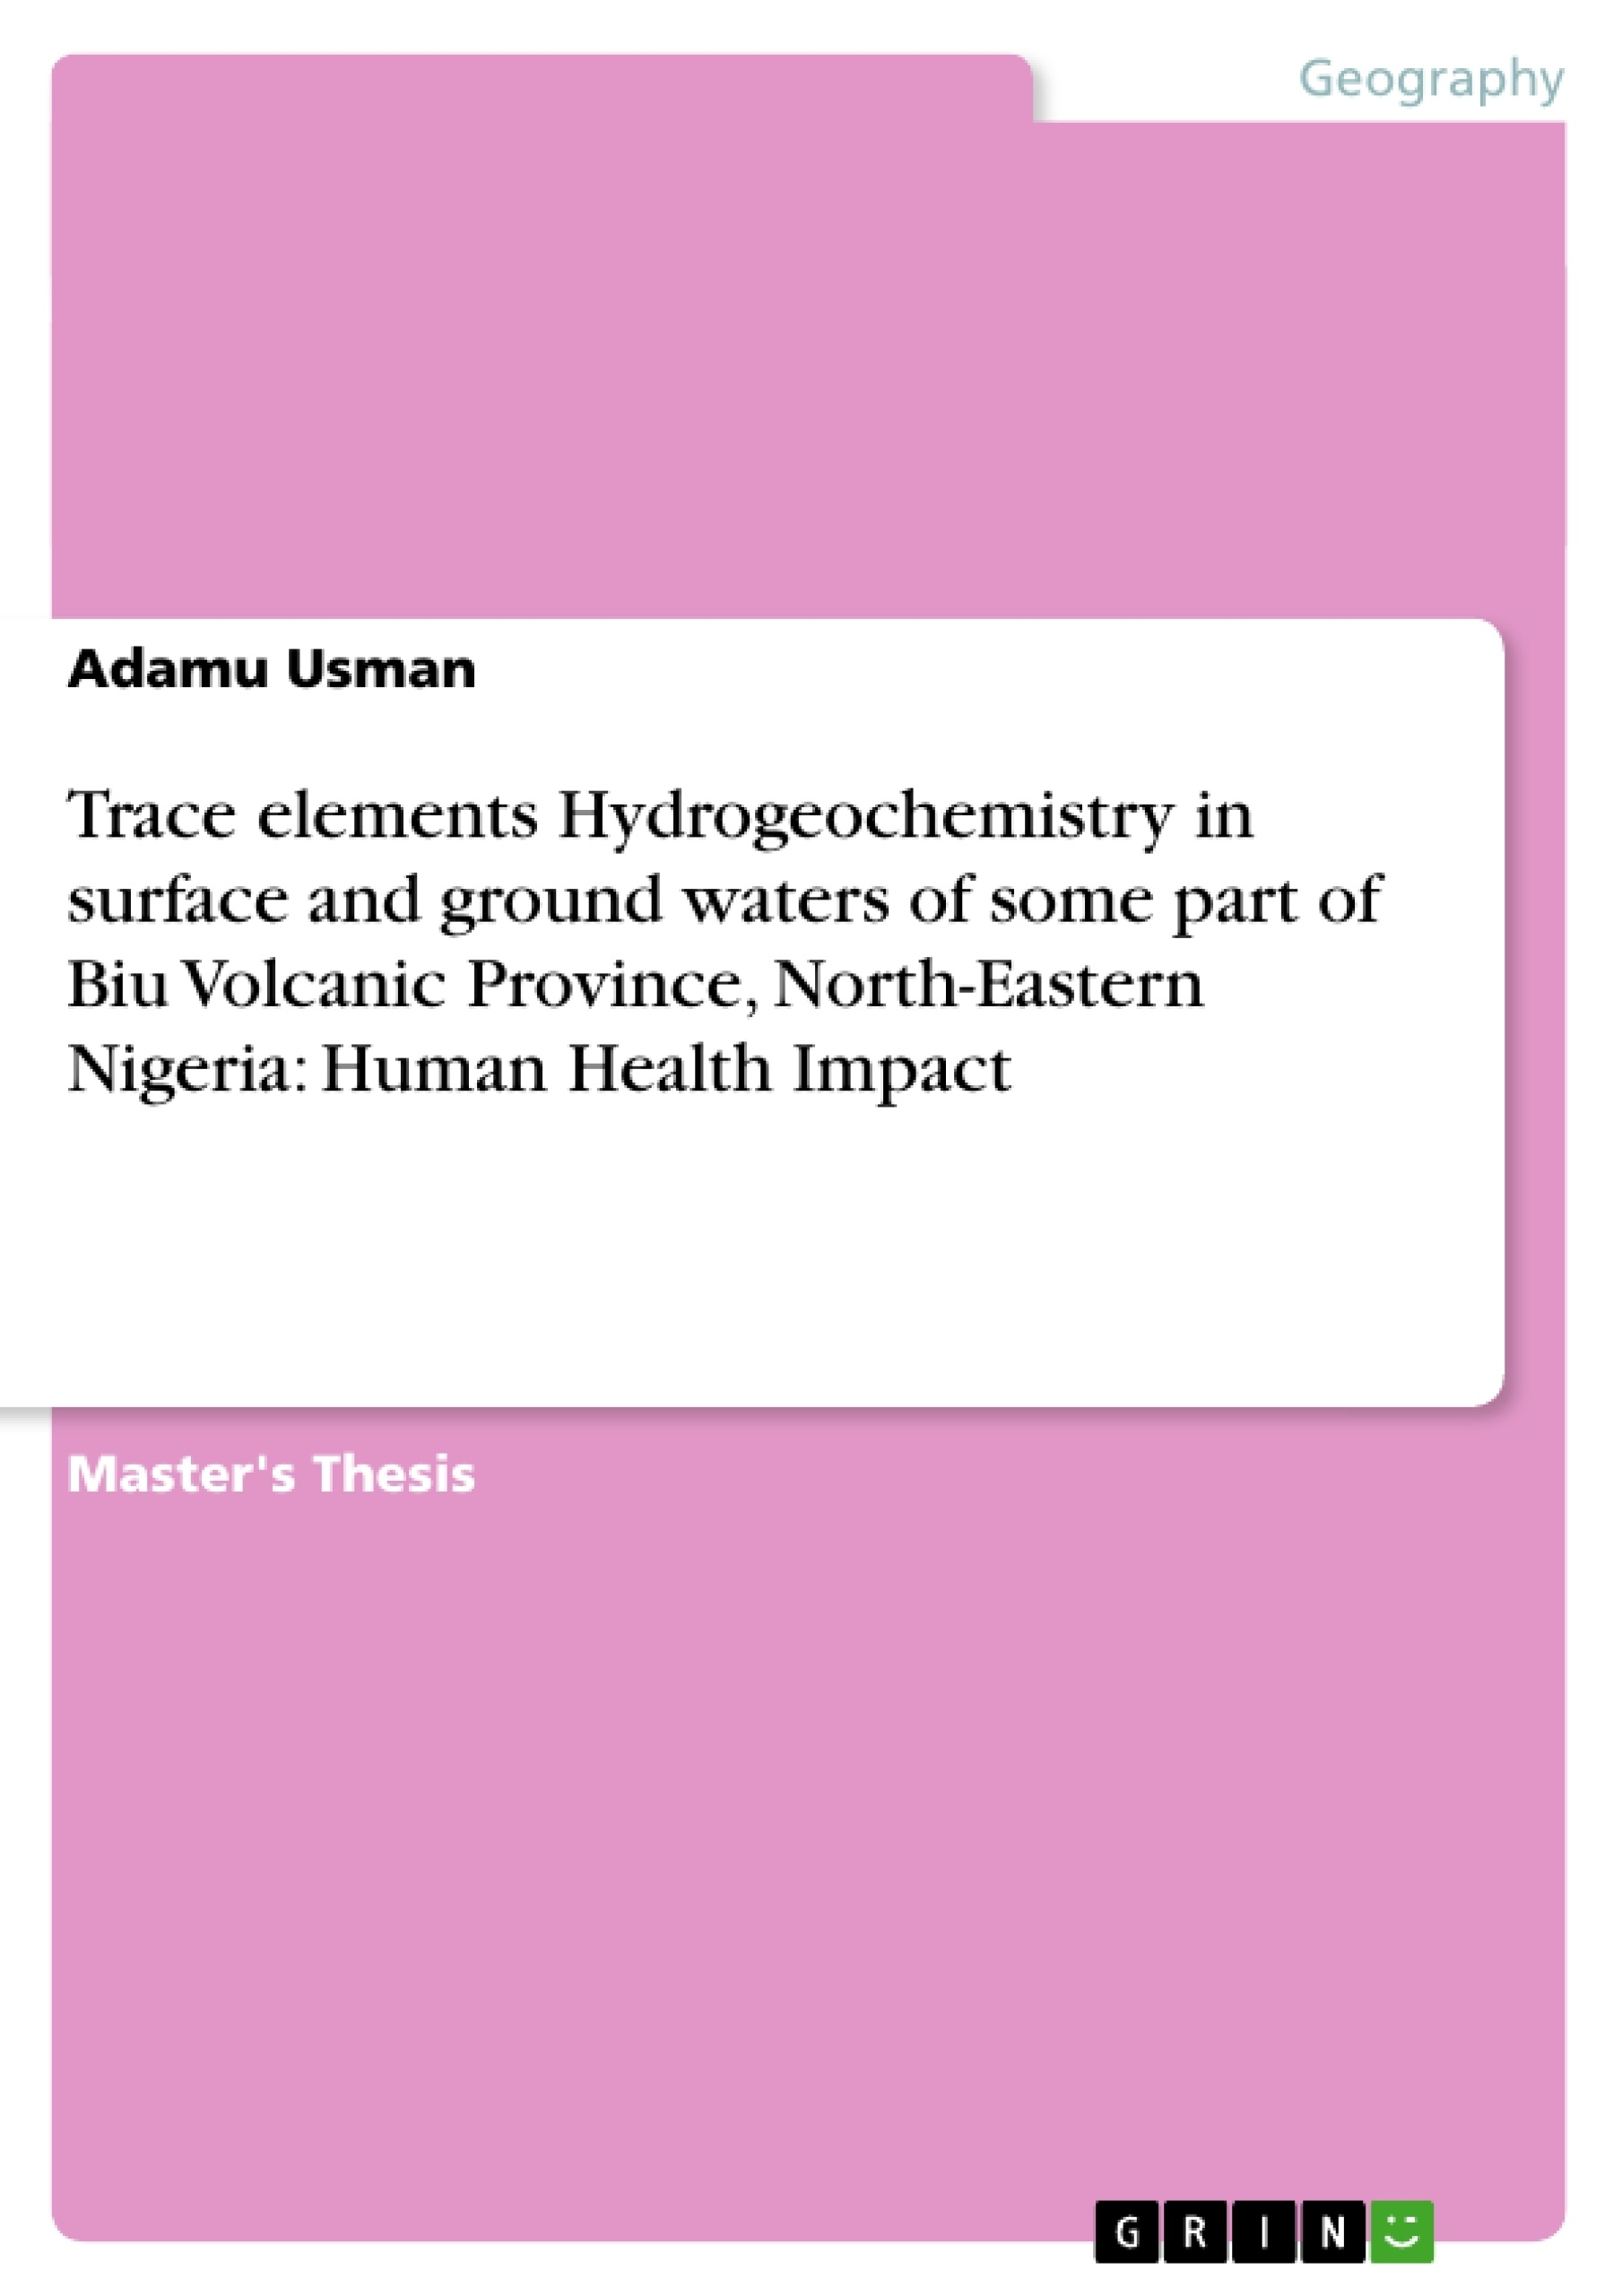 Title: Trace elements Hydrogeochemistry in surface and ground waters of some part of Biu Volcanic Province, North-Eastern Nigeria: Human Health Impact